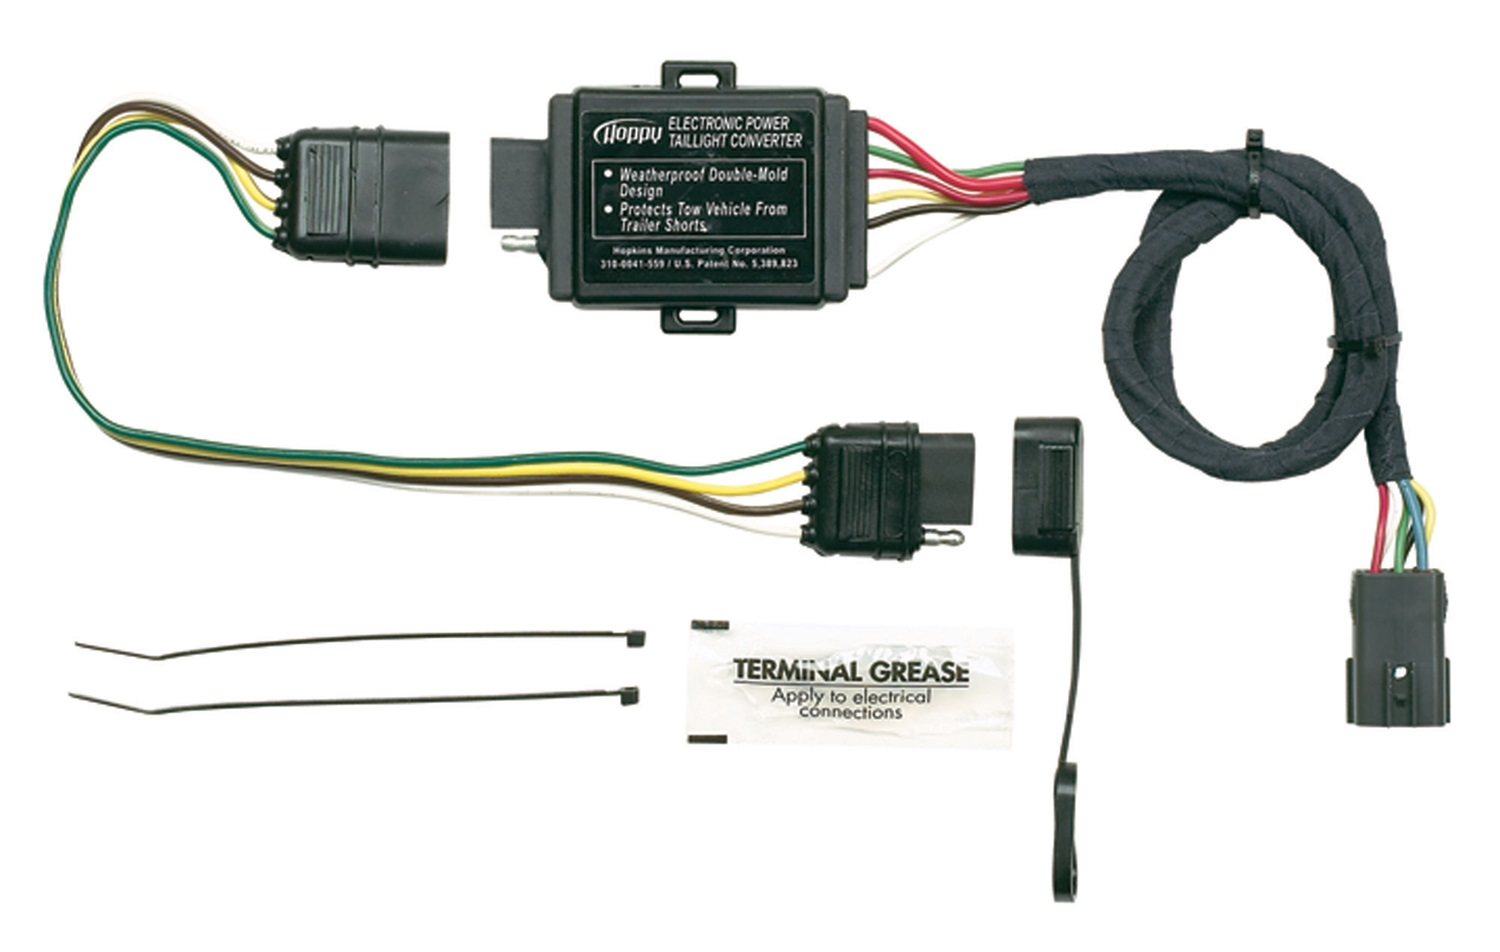 Hoppy Trailer Wiring Electrical Diagram Kits Hopkins Towing Solution 11143875 Wire Harness Adapters